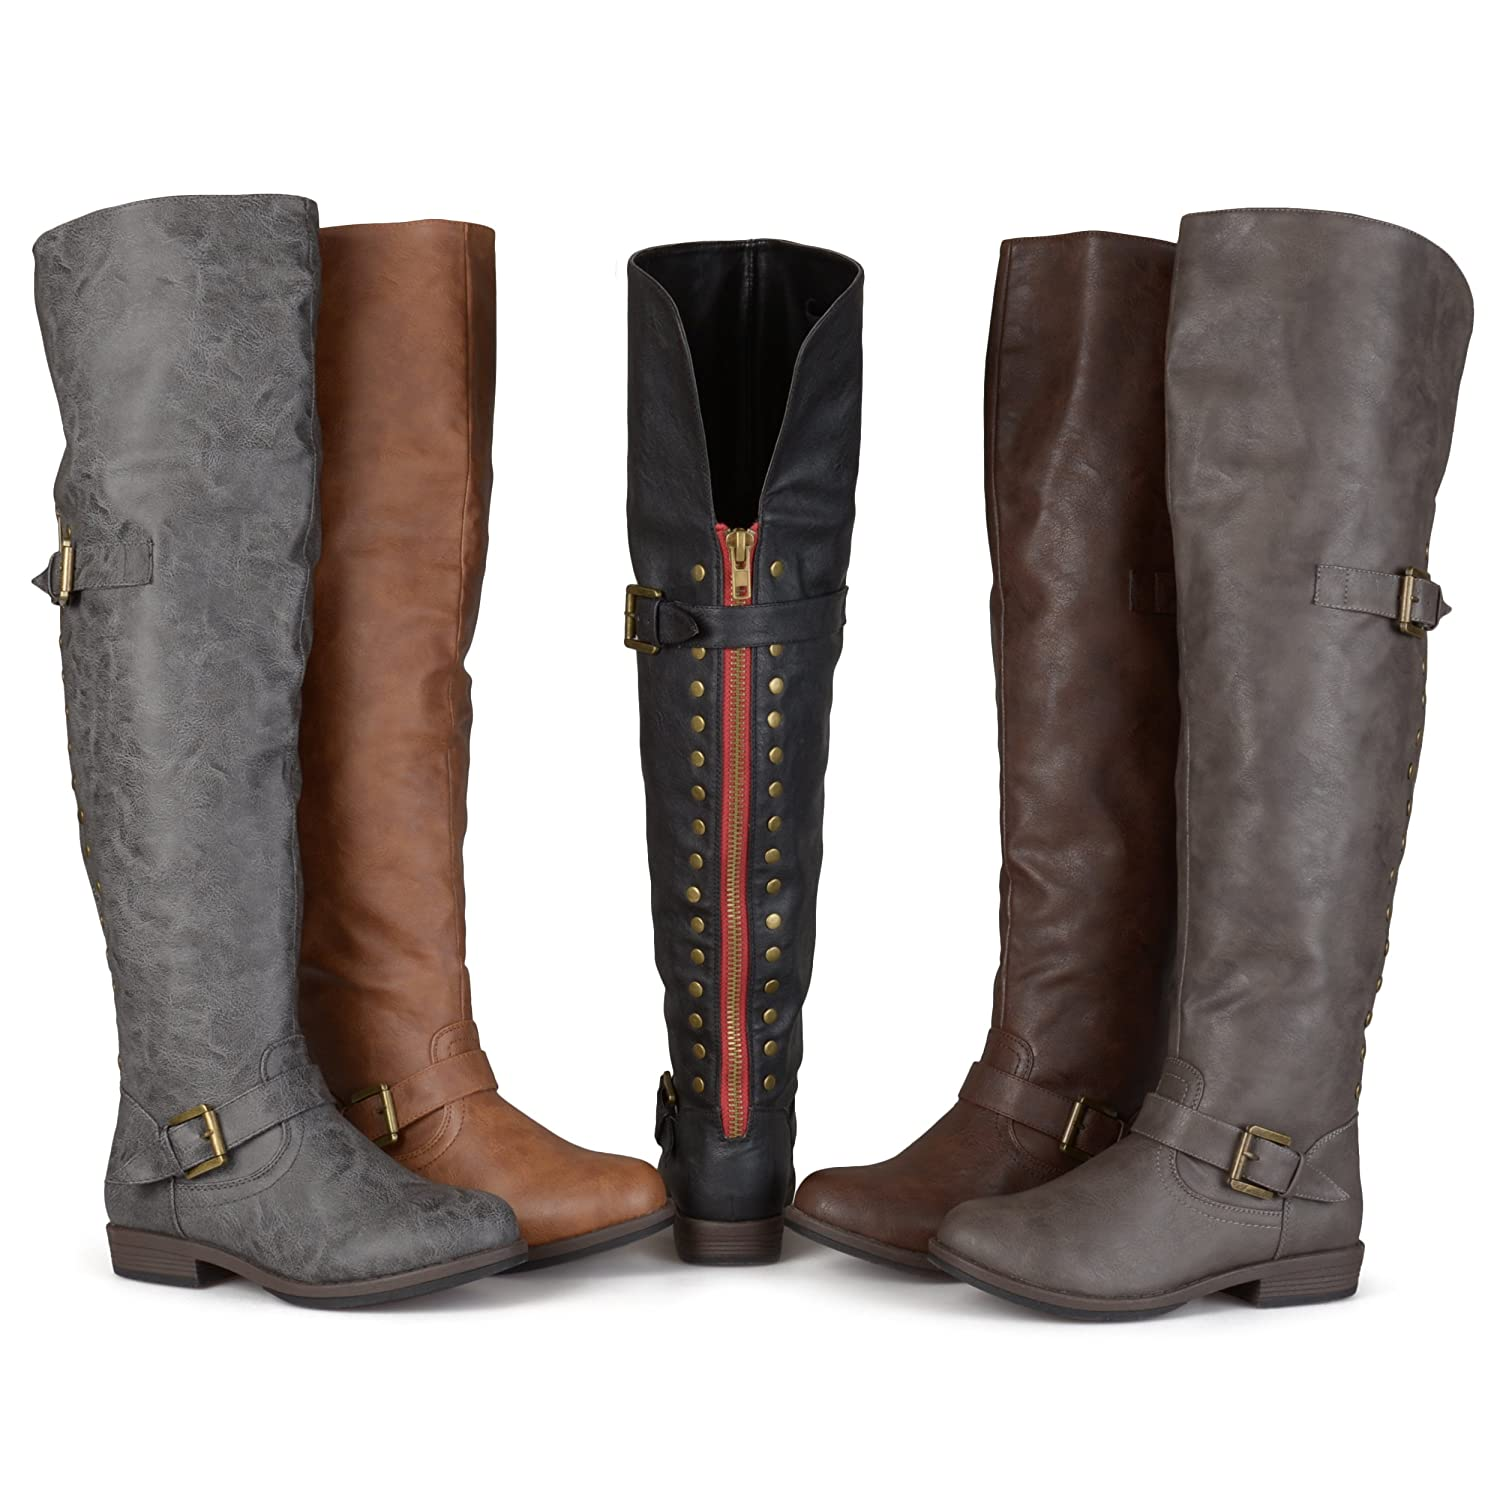 Women's Sugar Over the Knee Studded Buckle Boots - DeluxeAdultCostumes.com